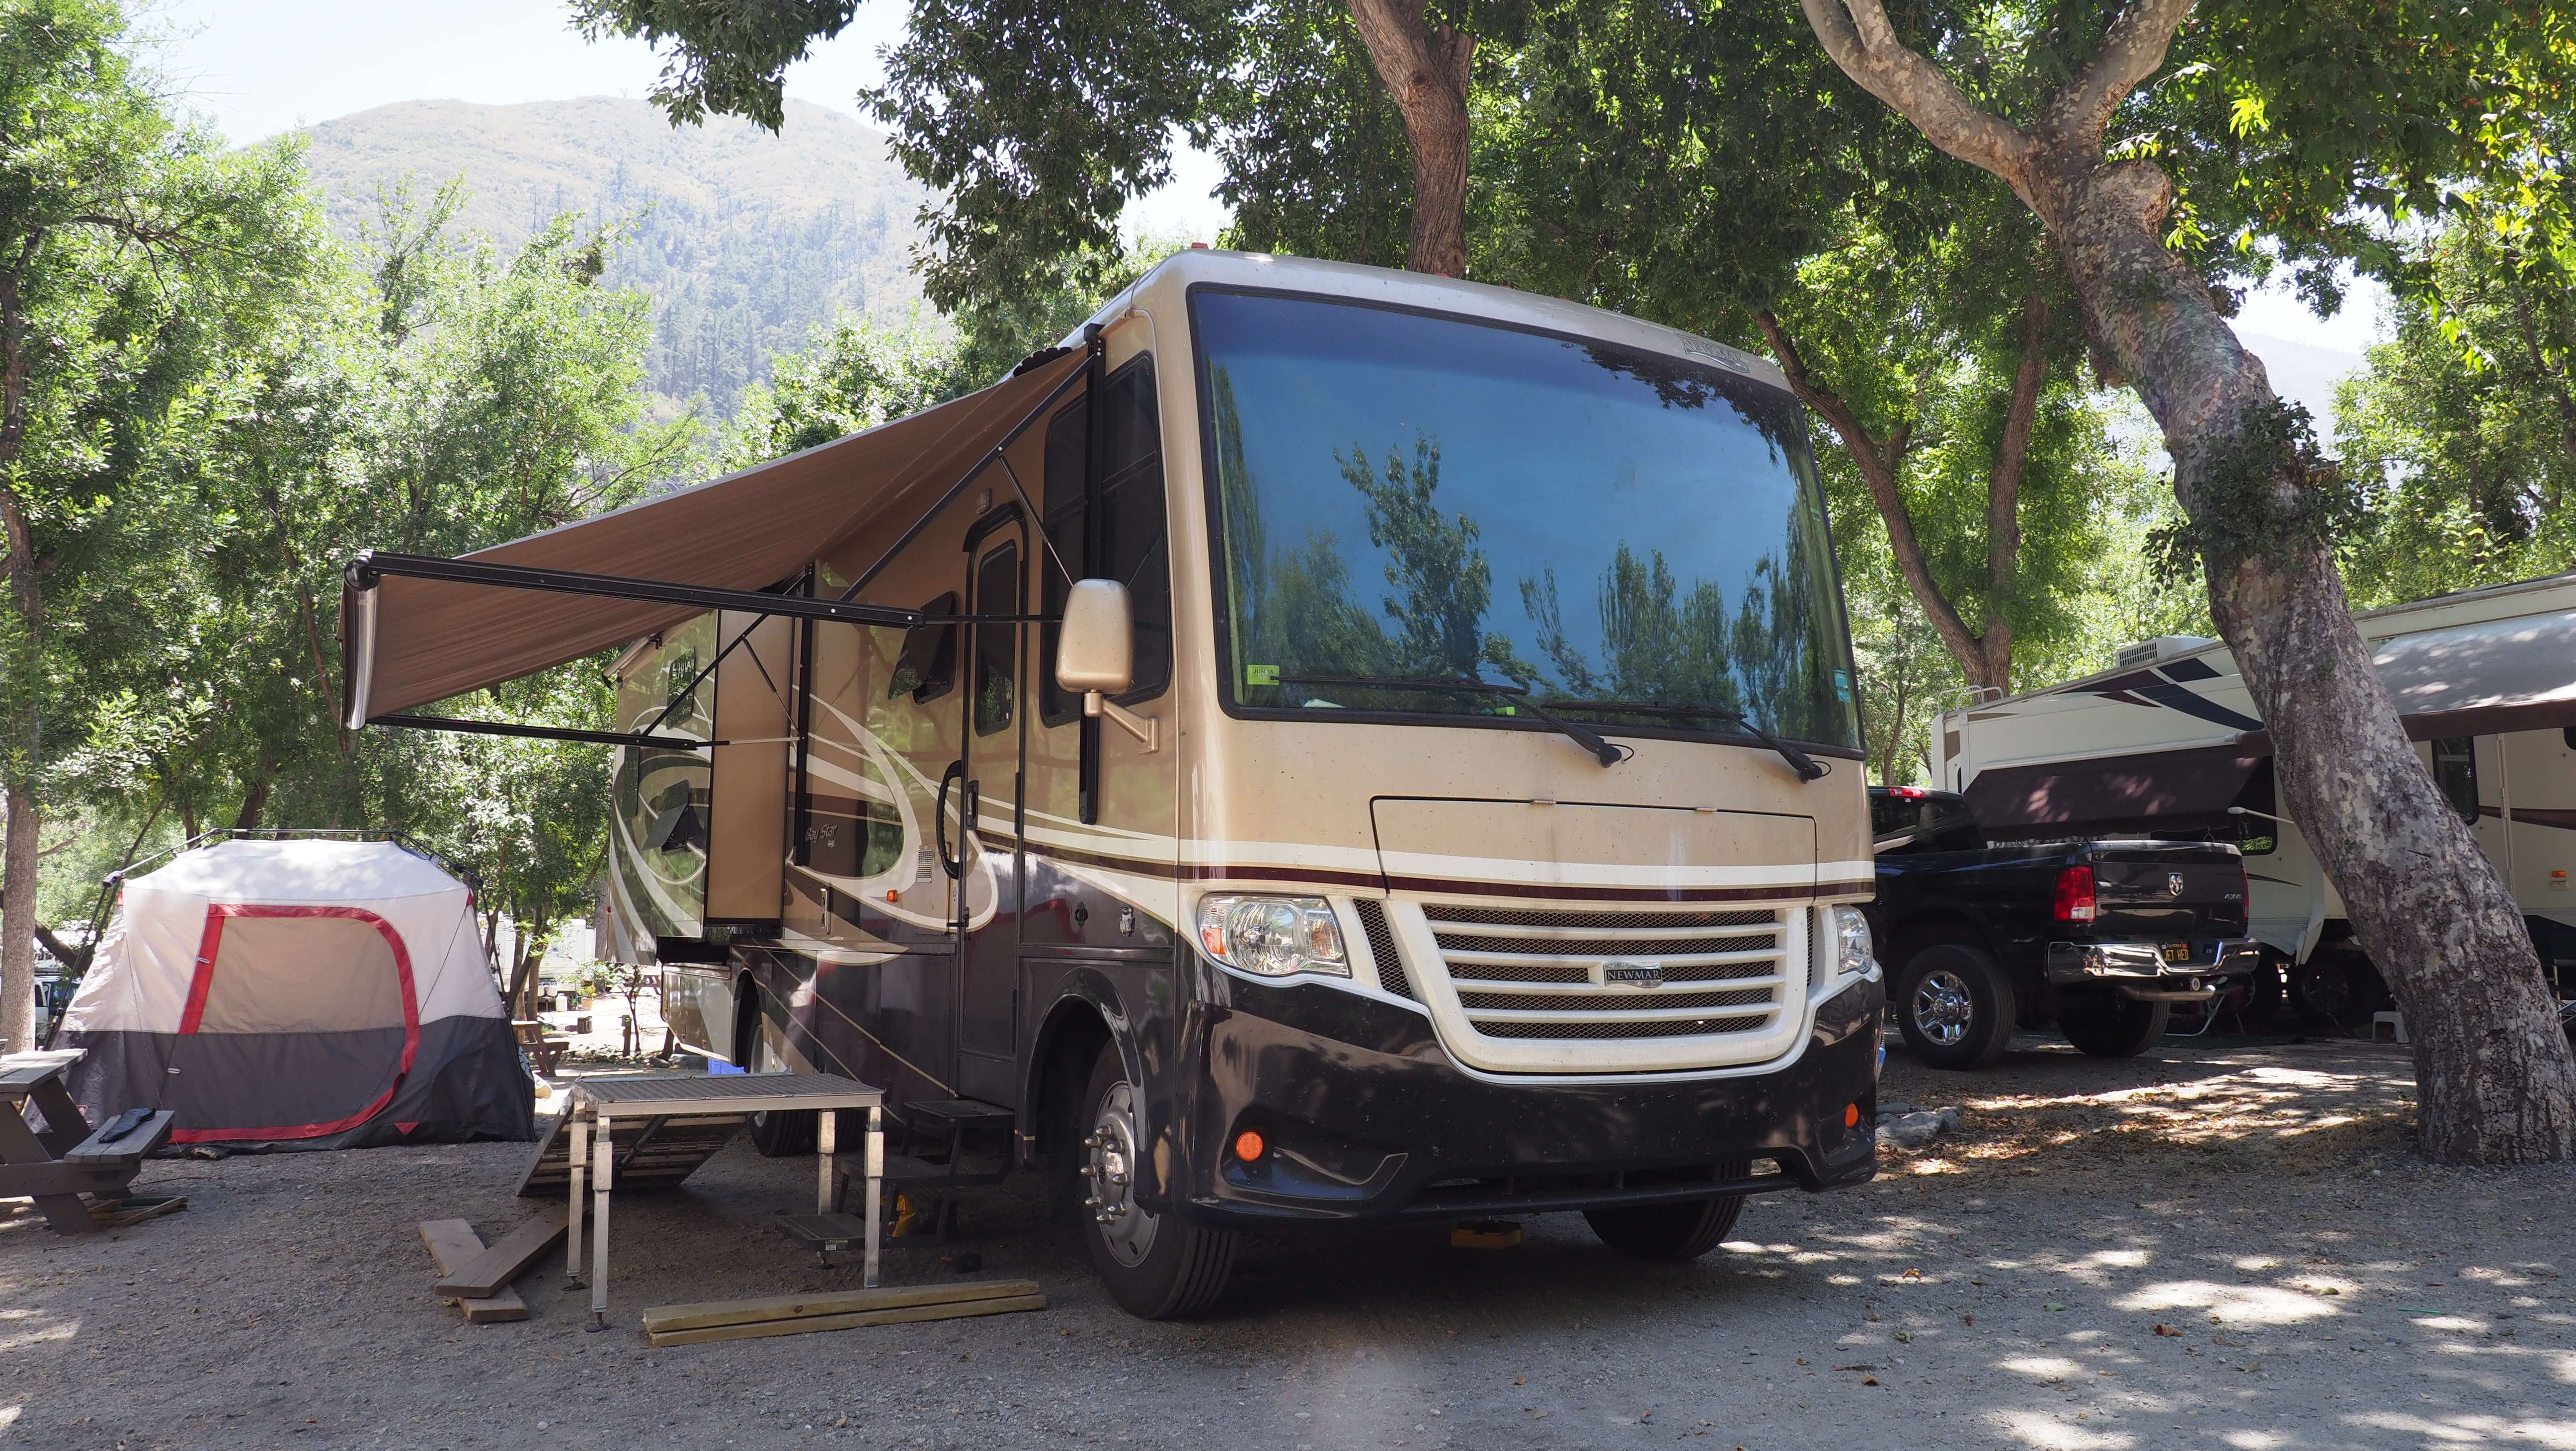 Staying flexible while RV living